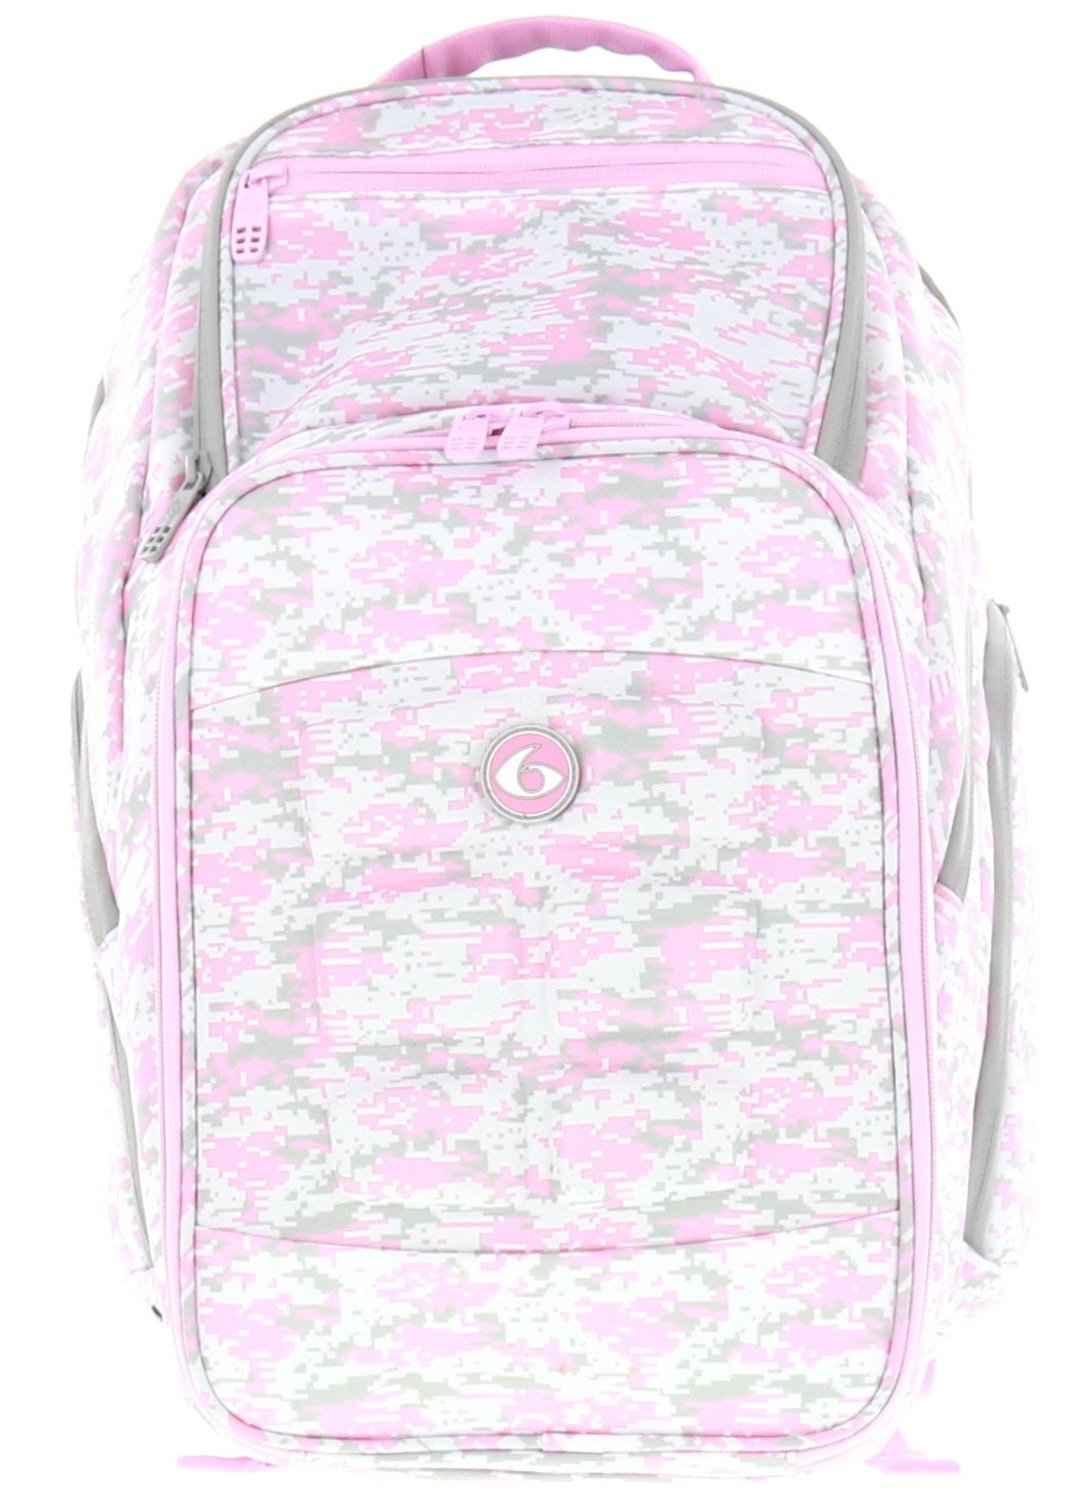 6 Pack Fitness Expedition Backpack W/ Removable Meal Management System 500 Pink & Grey Digital Camo w/ Bonus ZogoSportz Cyclone Shaker by 6 Pack Fitness (Image #8)